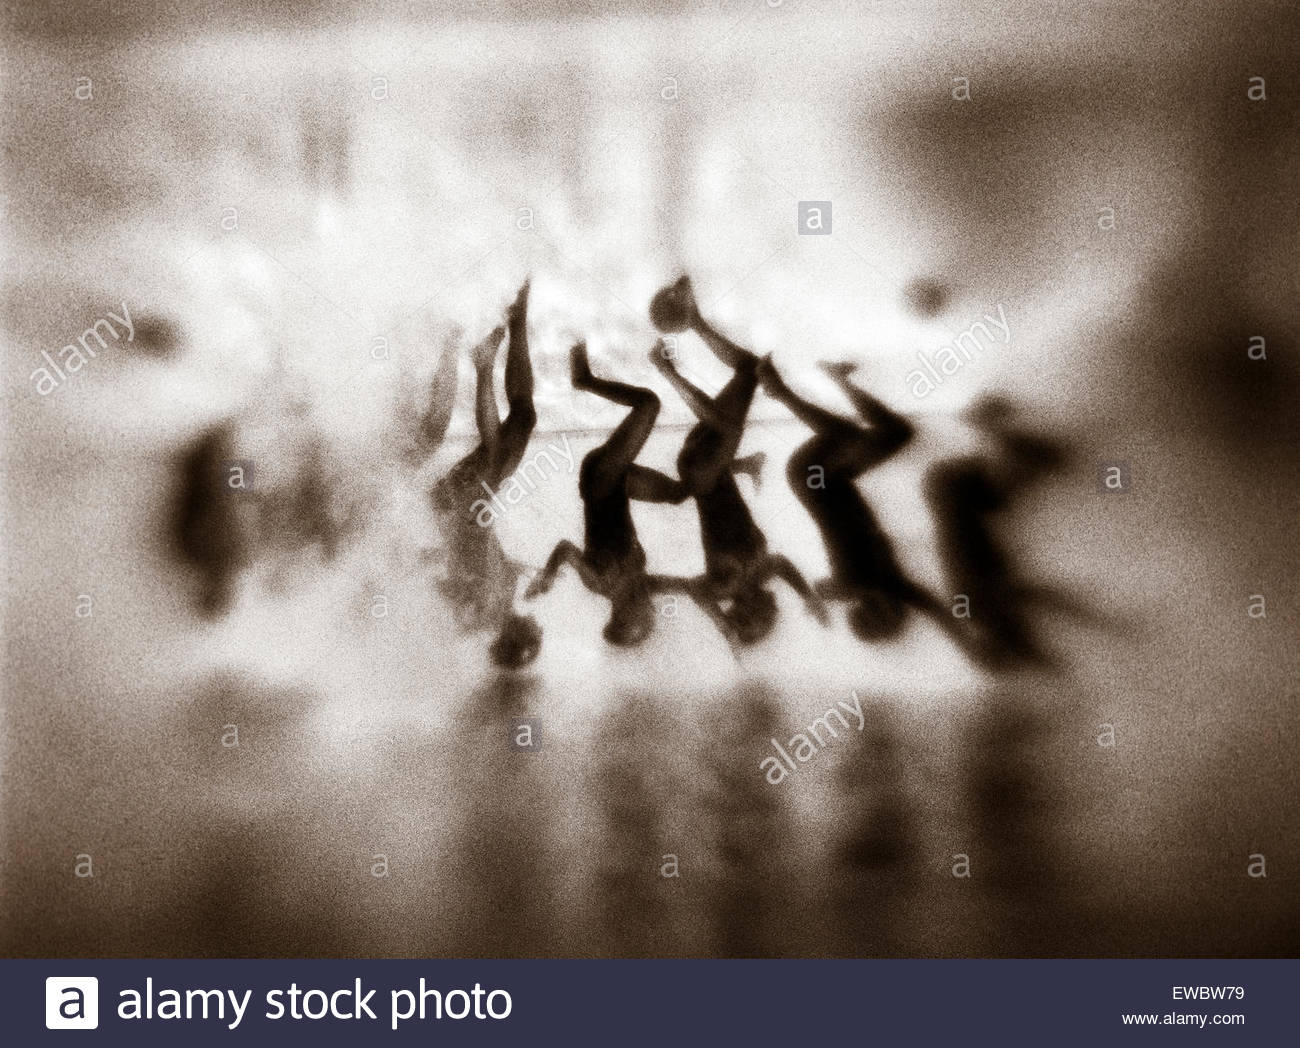 Synchronized swimmers seen underwater as they perform acrobats, Greece, Europe. - Stock Image